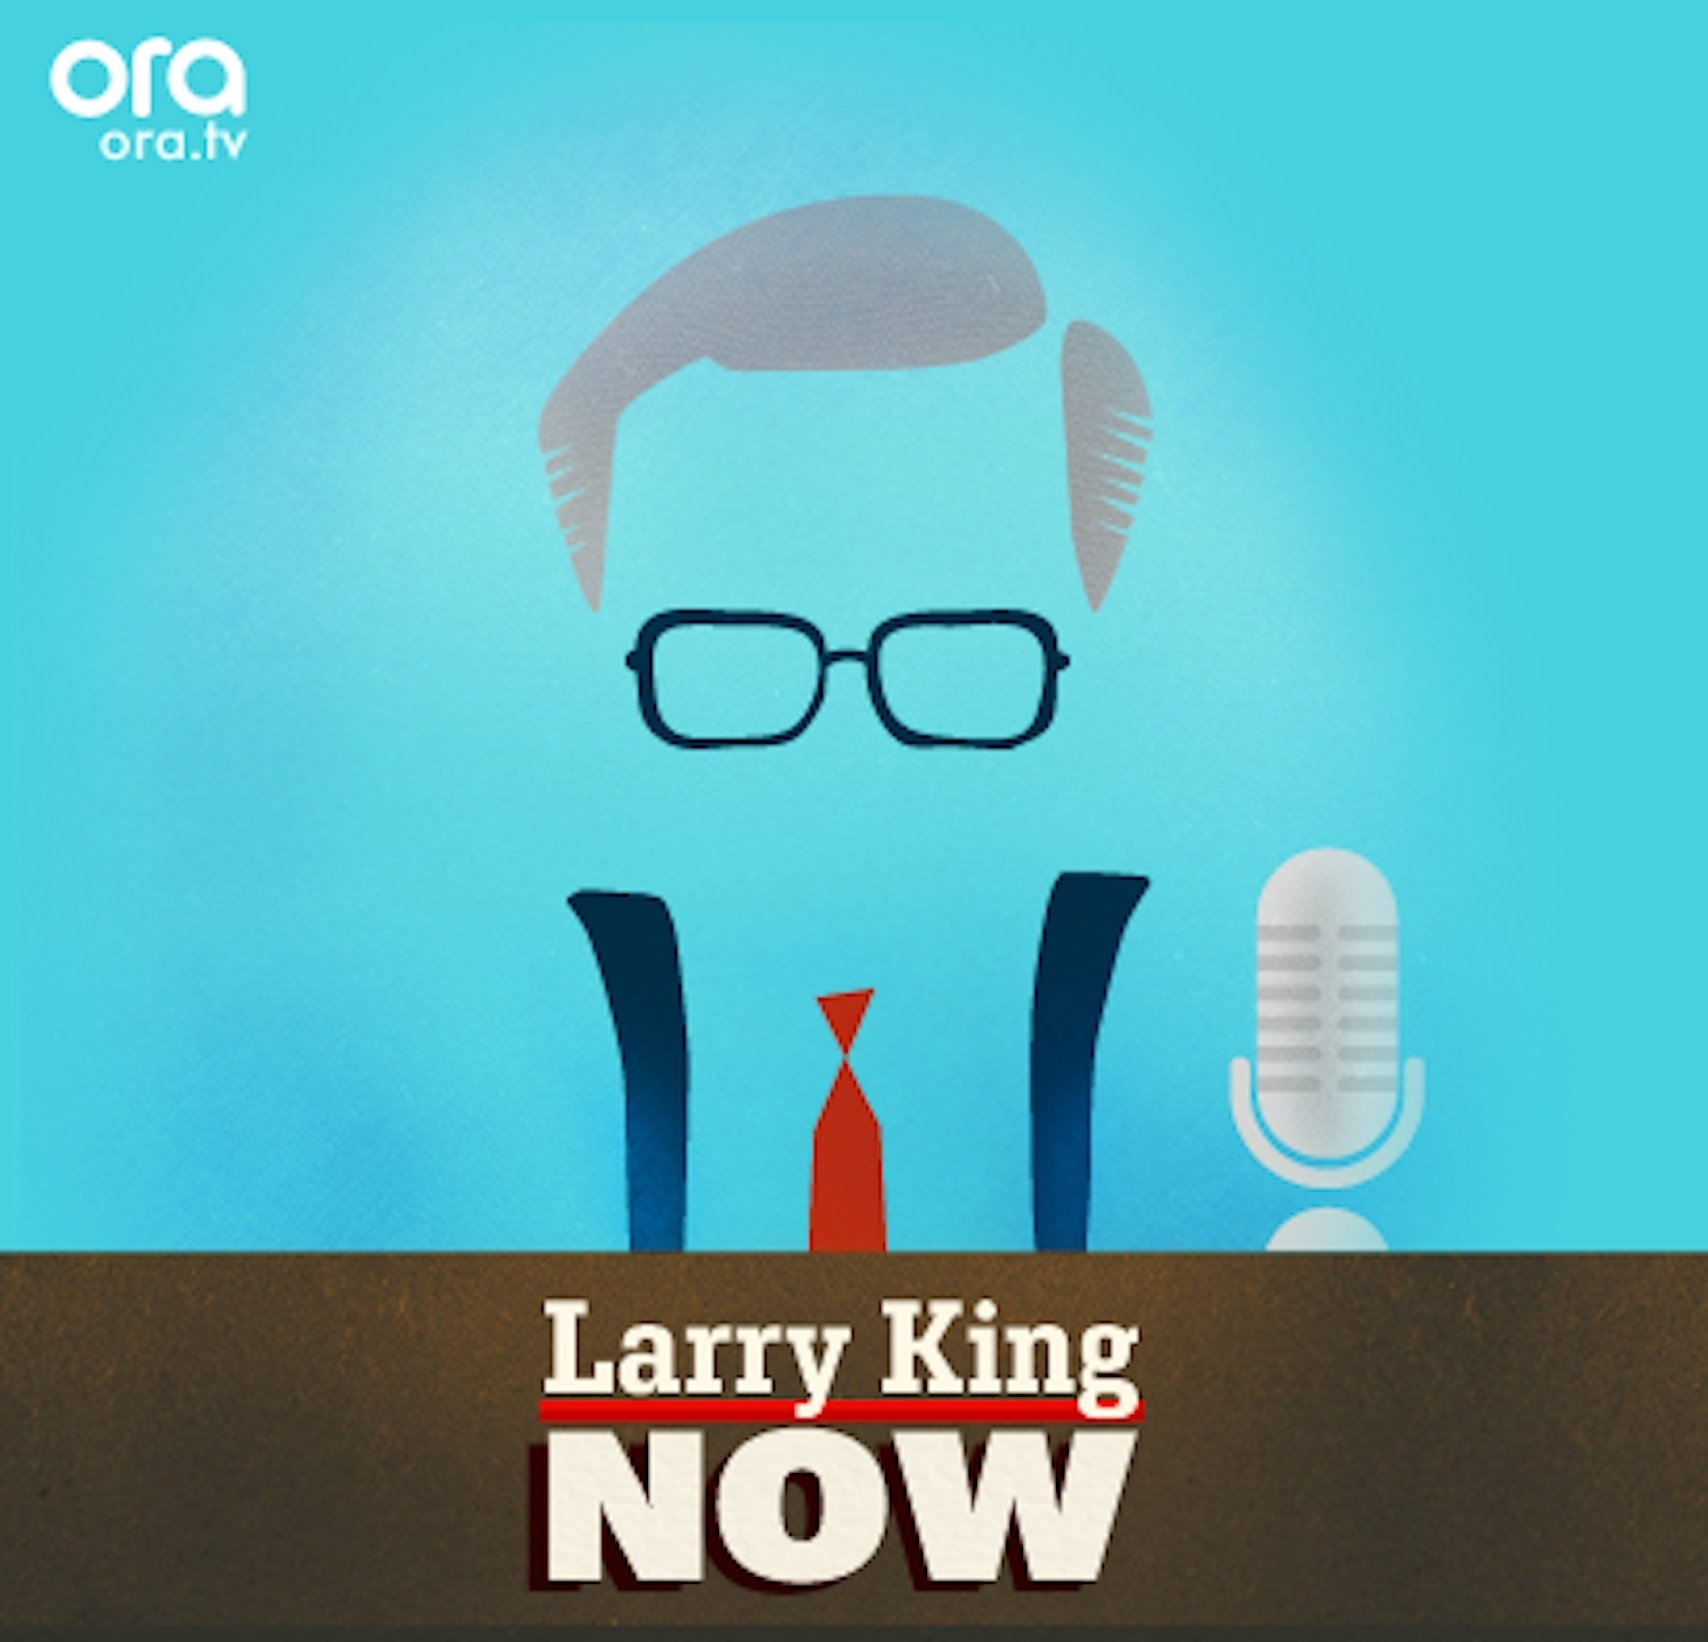 Larry King Now (TV Series 2012– ) - IMDb